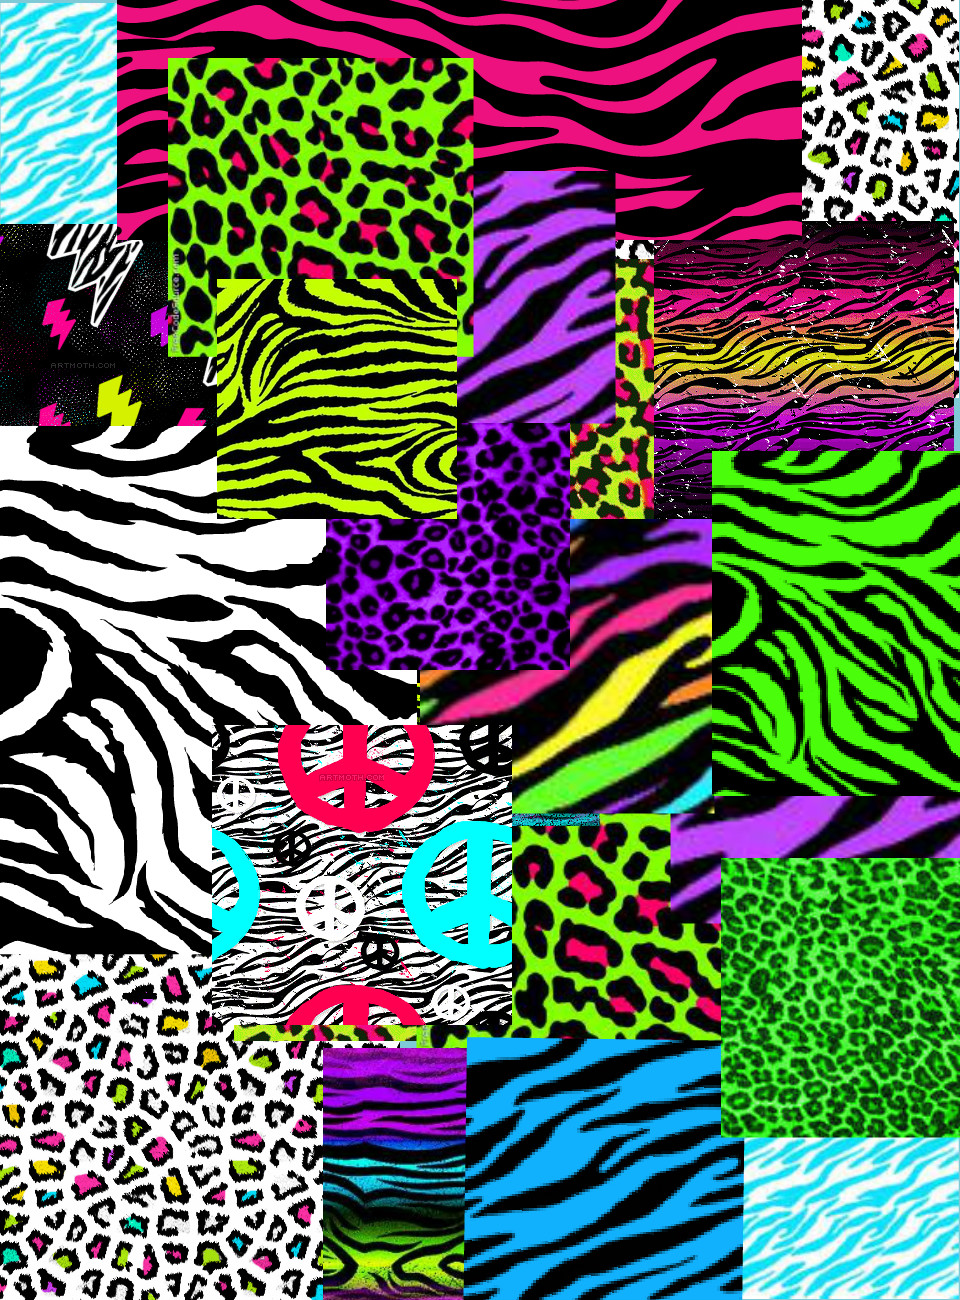 Colorful Cheetah Wallpaper - WallpaperSafari Multi Colored Zebra Print Wallpapers